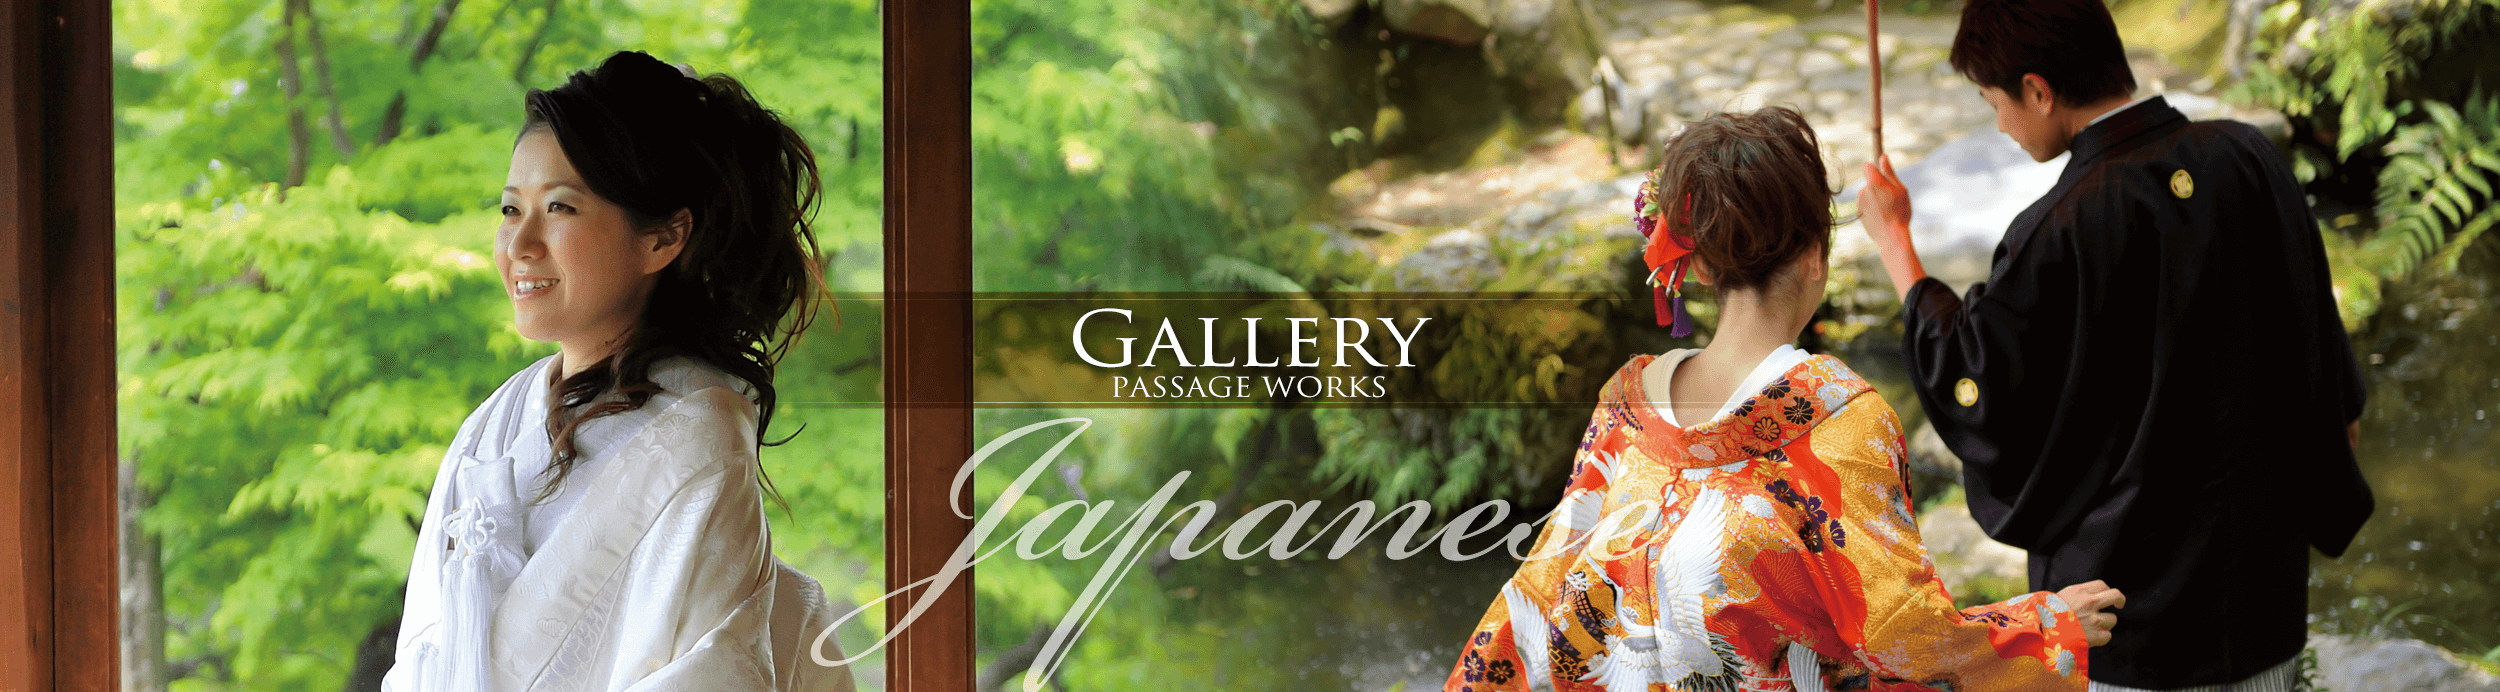 GALLERY-japanese|和装ー庭園 撮影